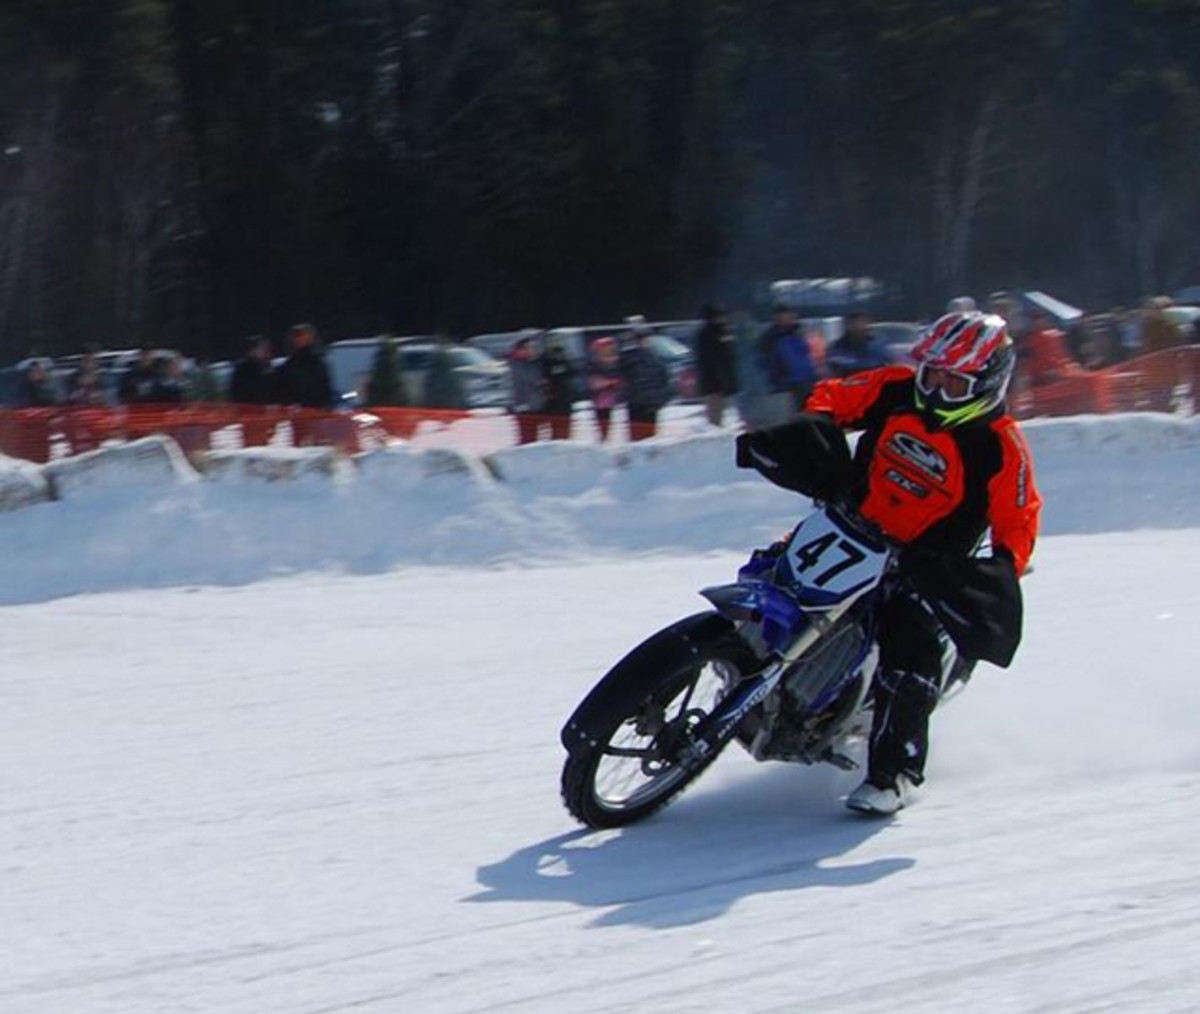 When you're racing a motorcycle on ice there's not much of a friction zone.